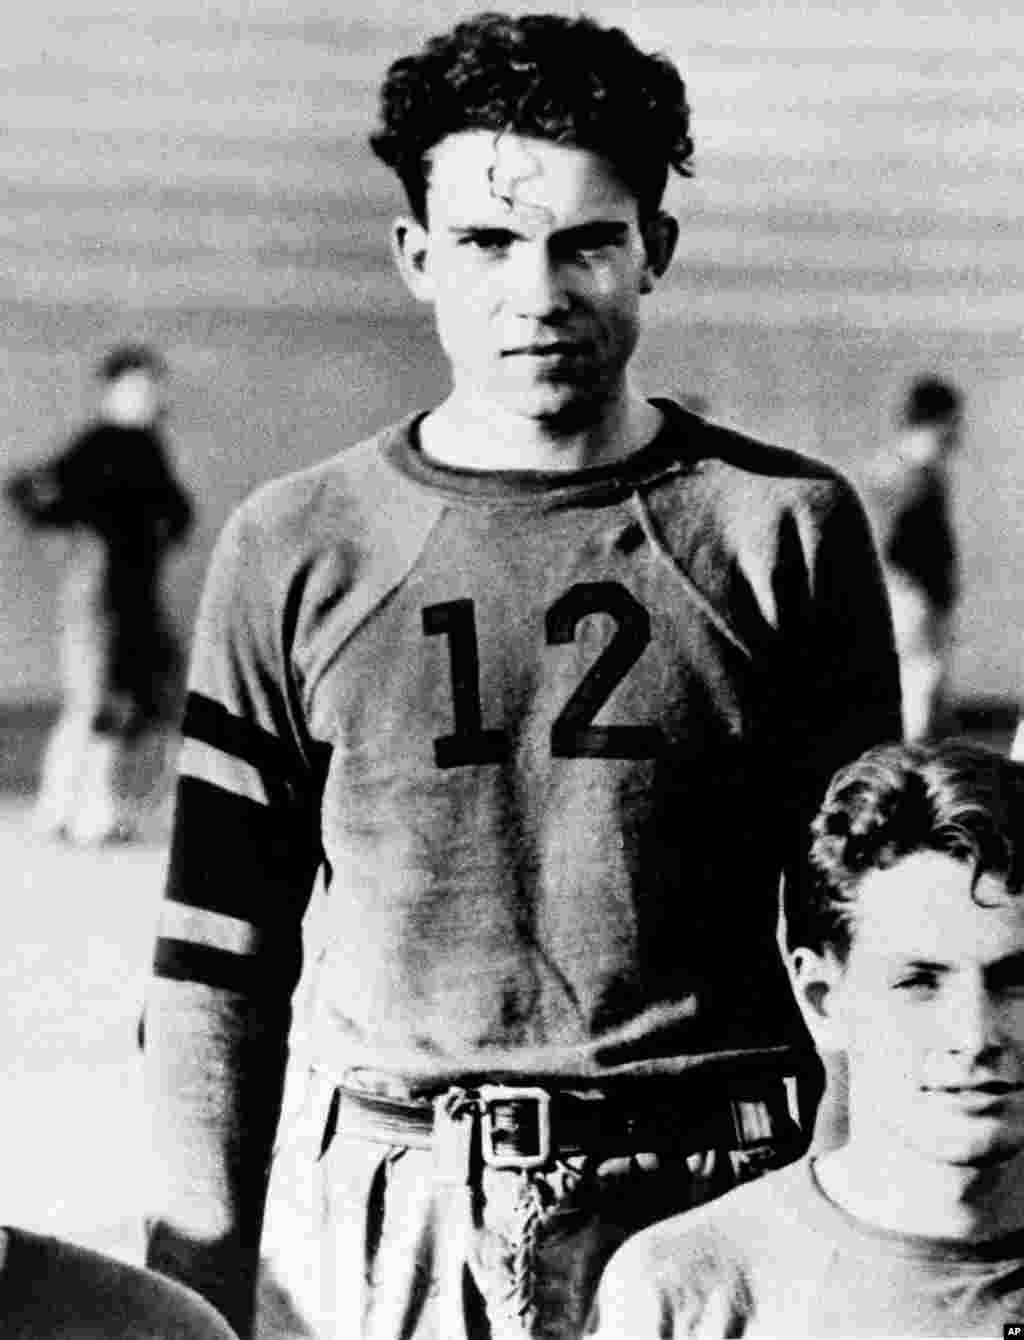 Former U.S. President Richard Nixon as a reserve for a California college football team in the 1930s